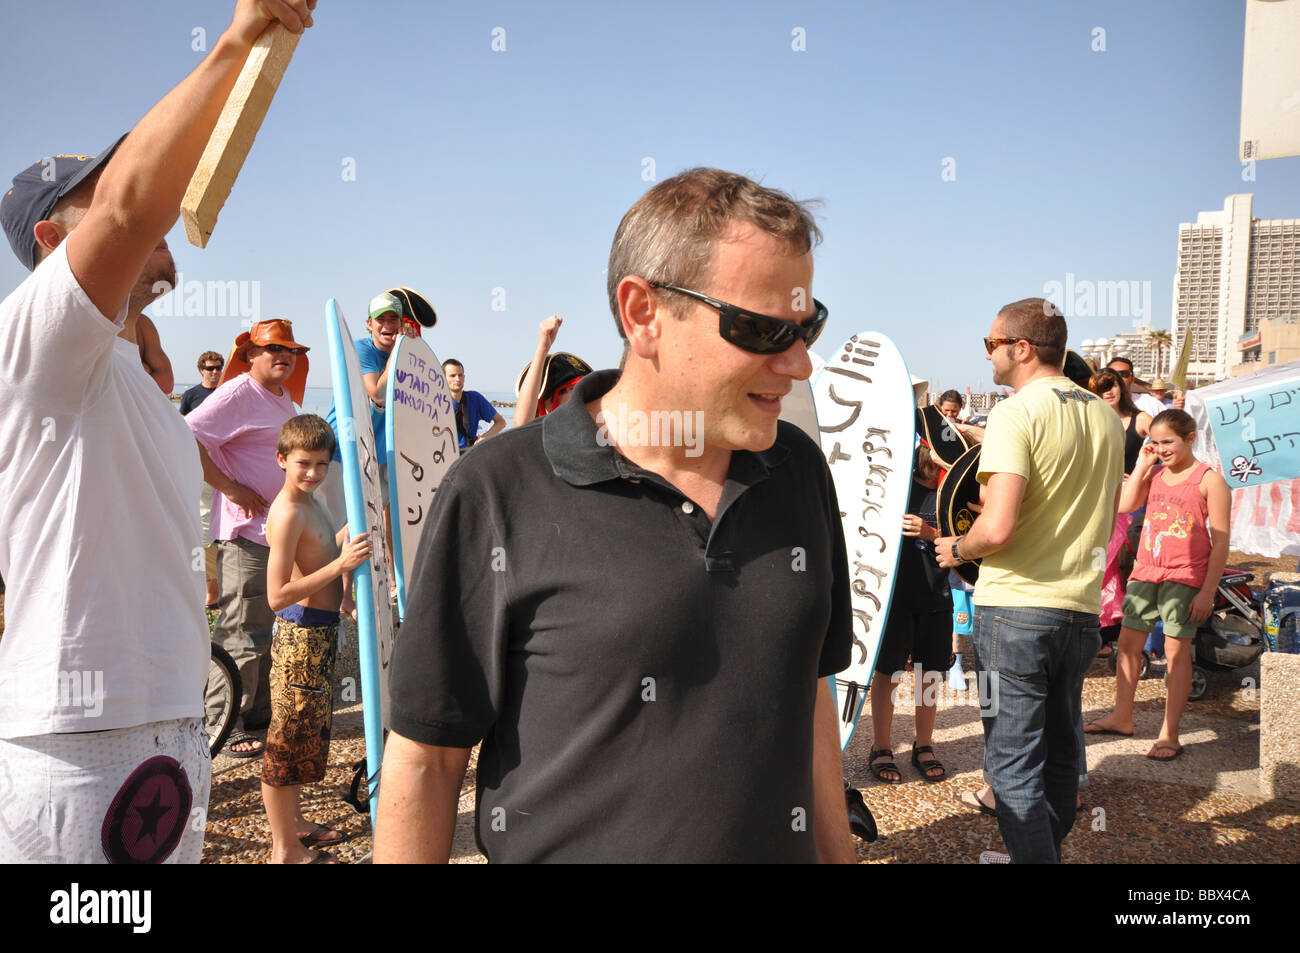 Israel Tel Aviv An anti sea pollution protest led by Knesset Member Nitzan Horowitz - Stock Image